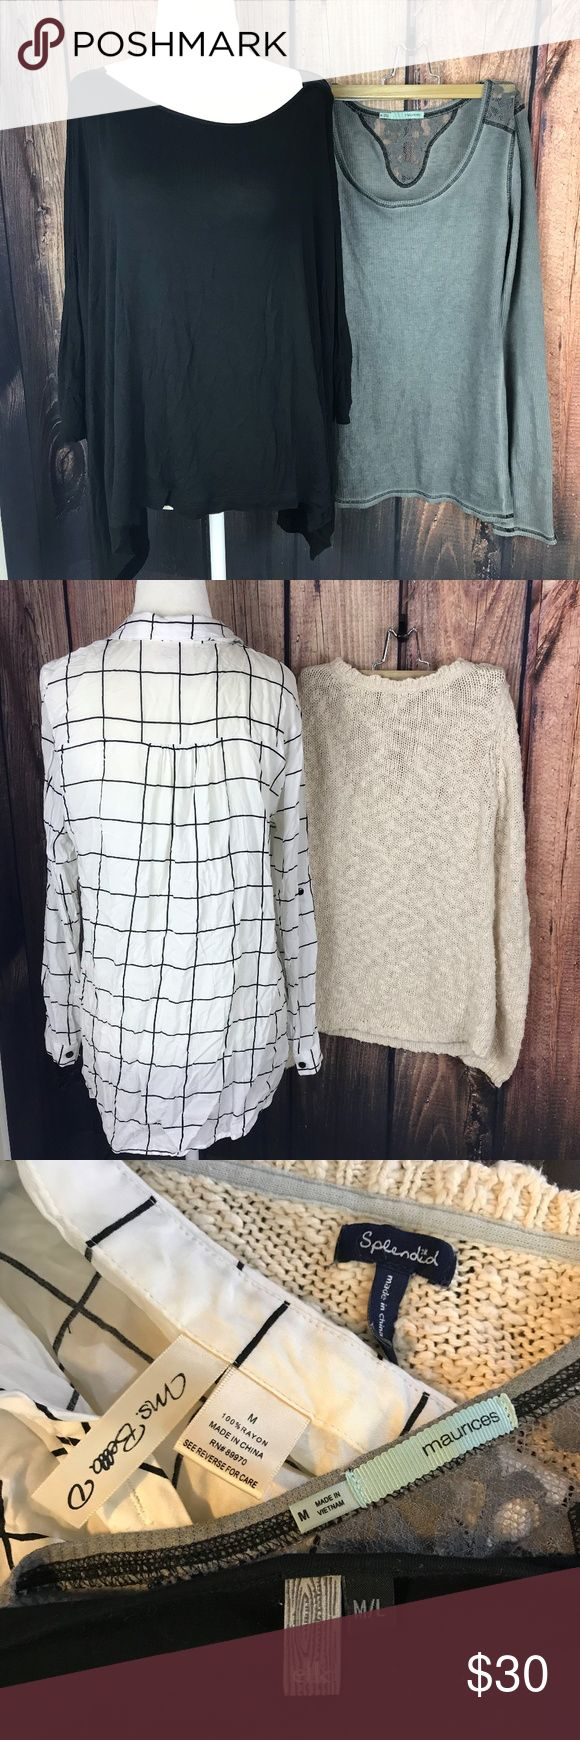 Lot of 4 Size Medium Tops Batwing Neutrals Long Gently Used, all no flaws, except for the splendid knit top, it has a light stain on the front. All size medium, batwing top M/L Splendid Tops Tees - Long Sleeve